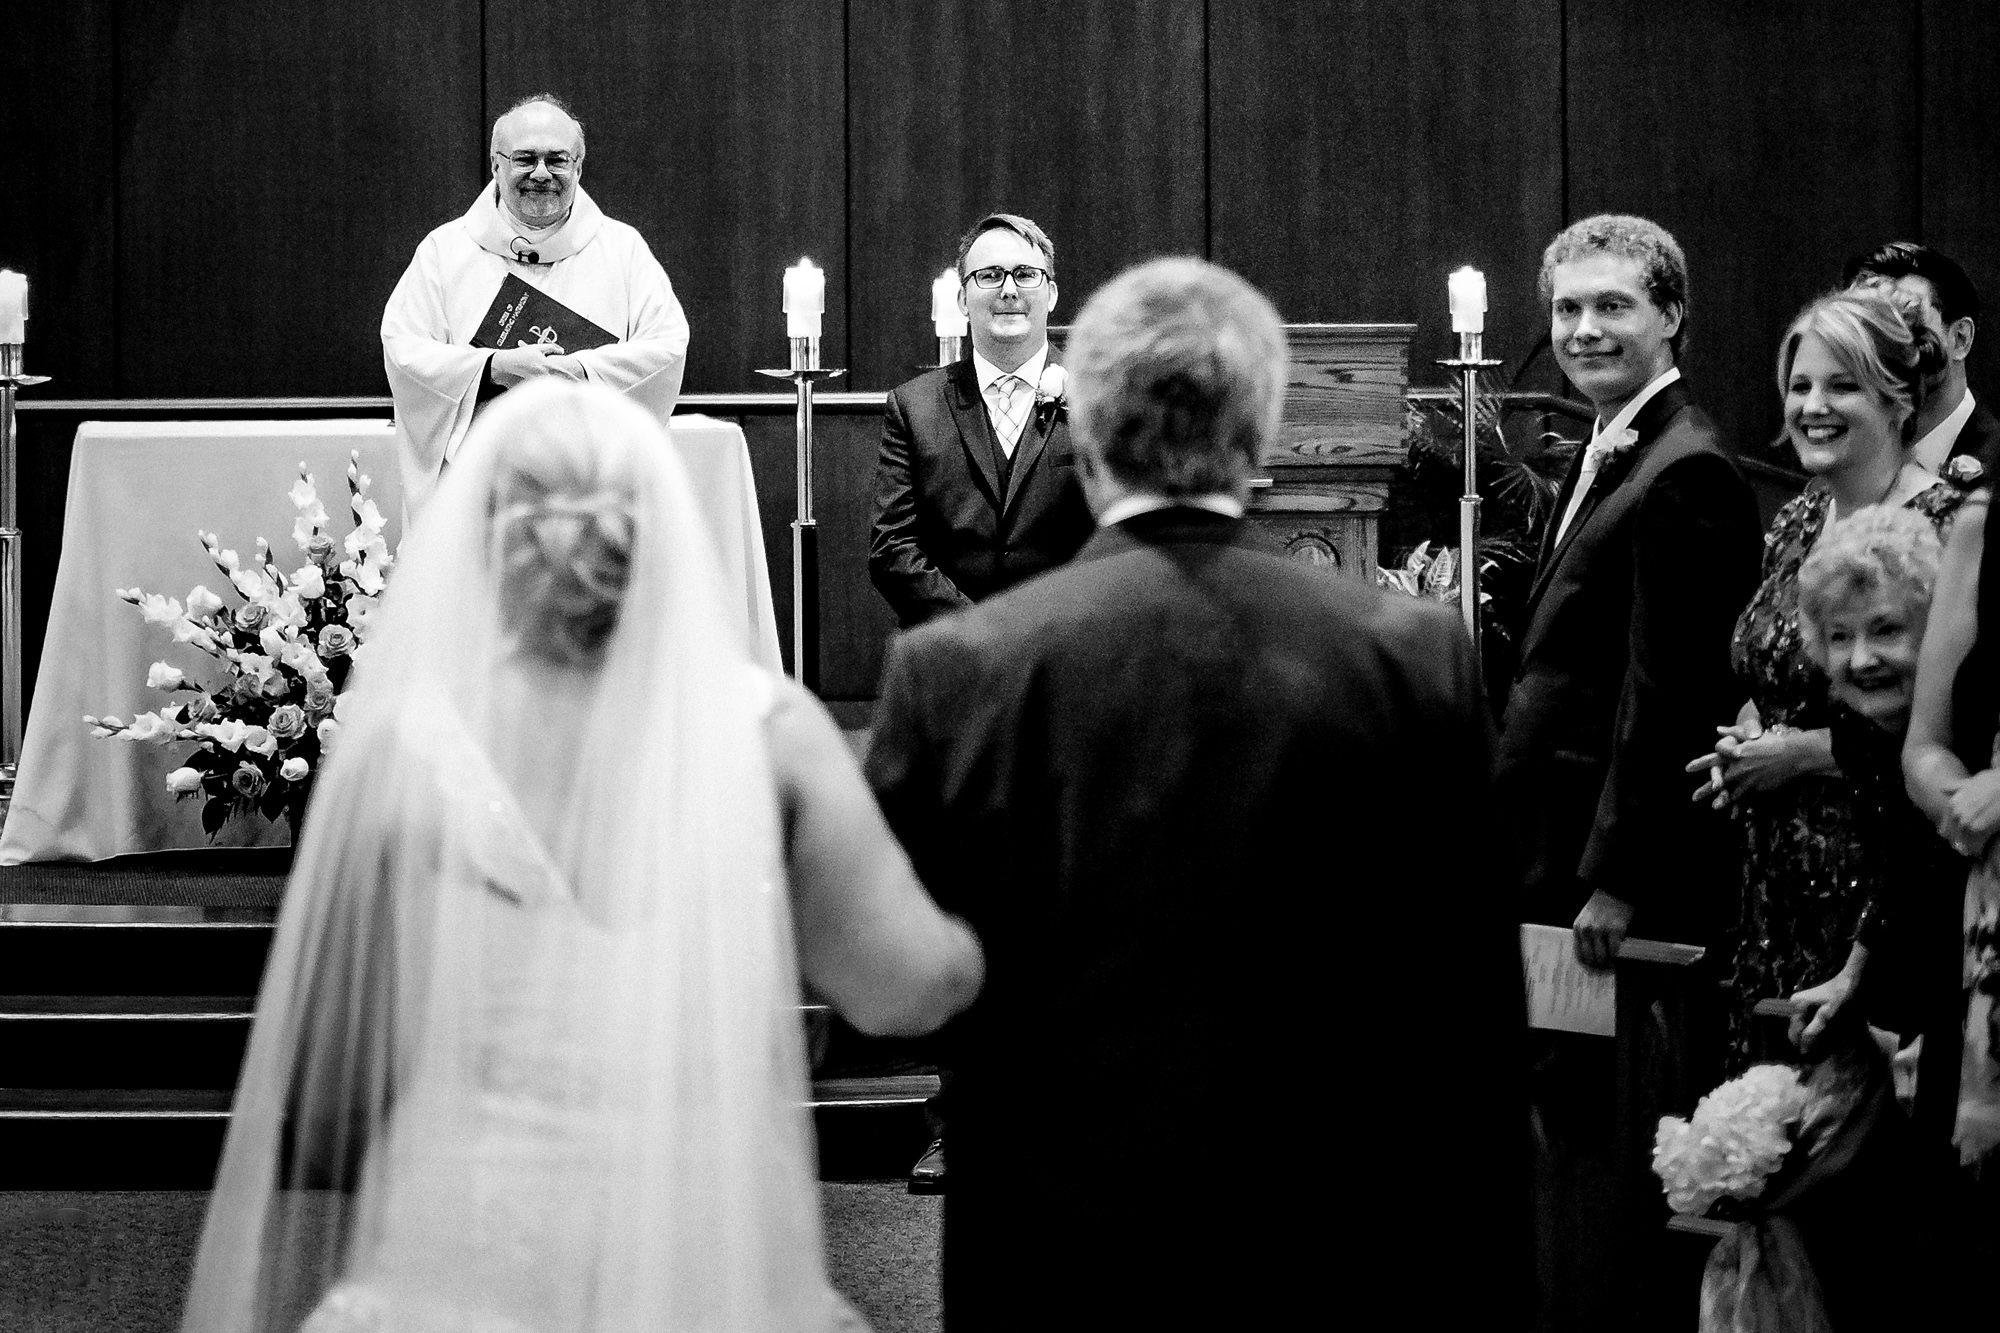 St-Max-Kolbe-Wedding-Ohio-Photographer-2.jpg